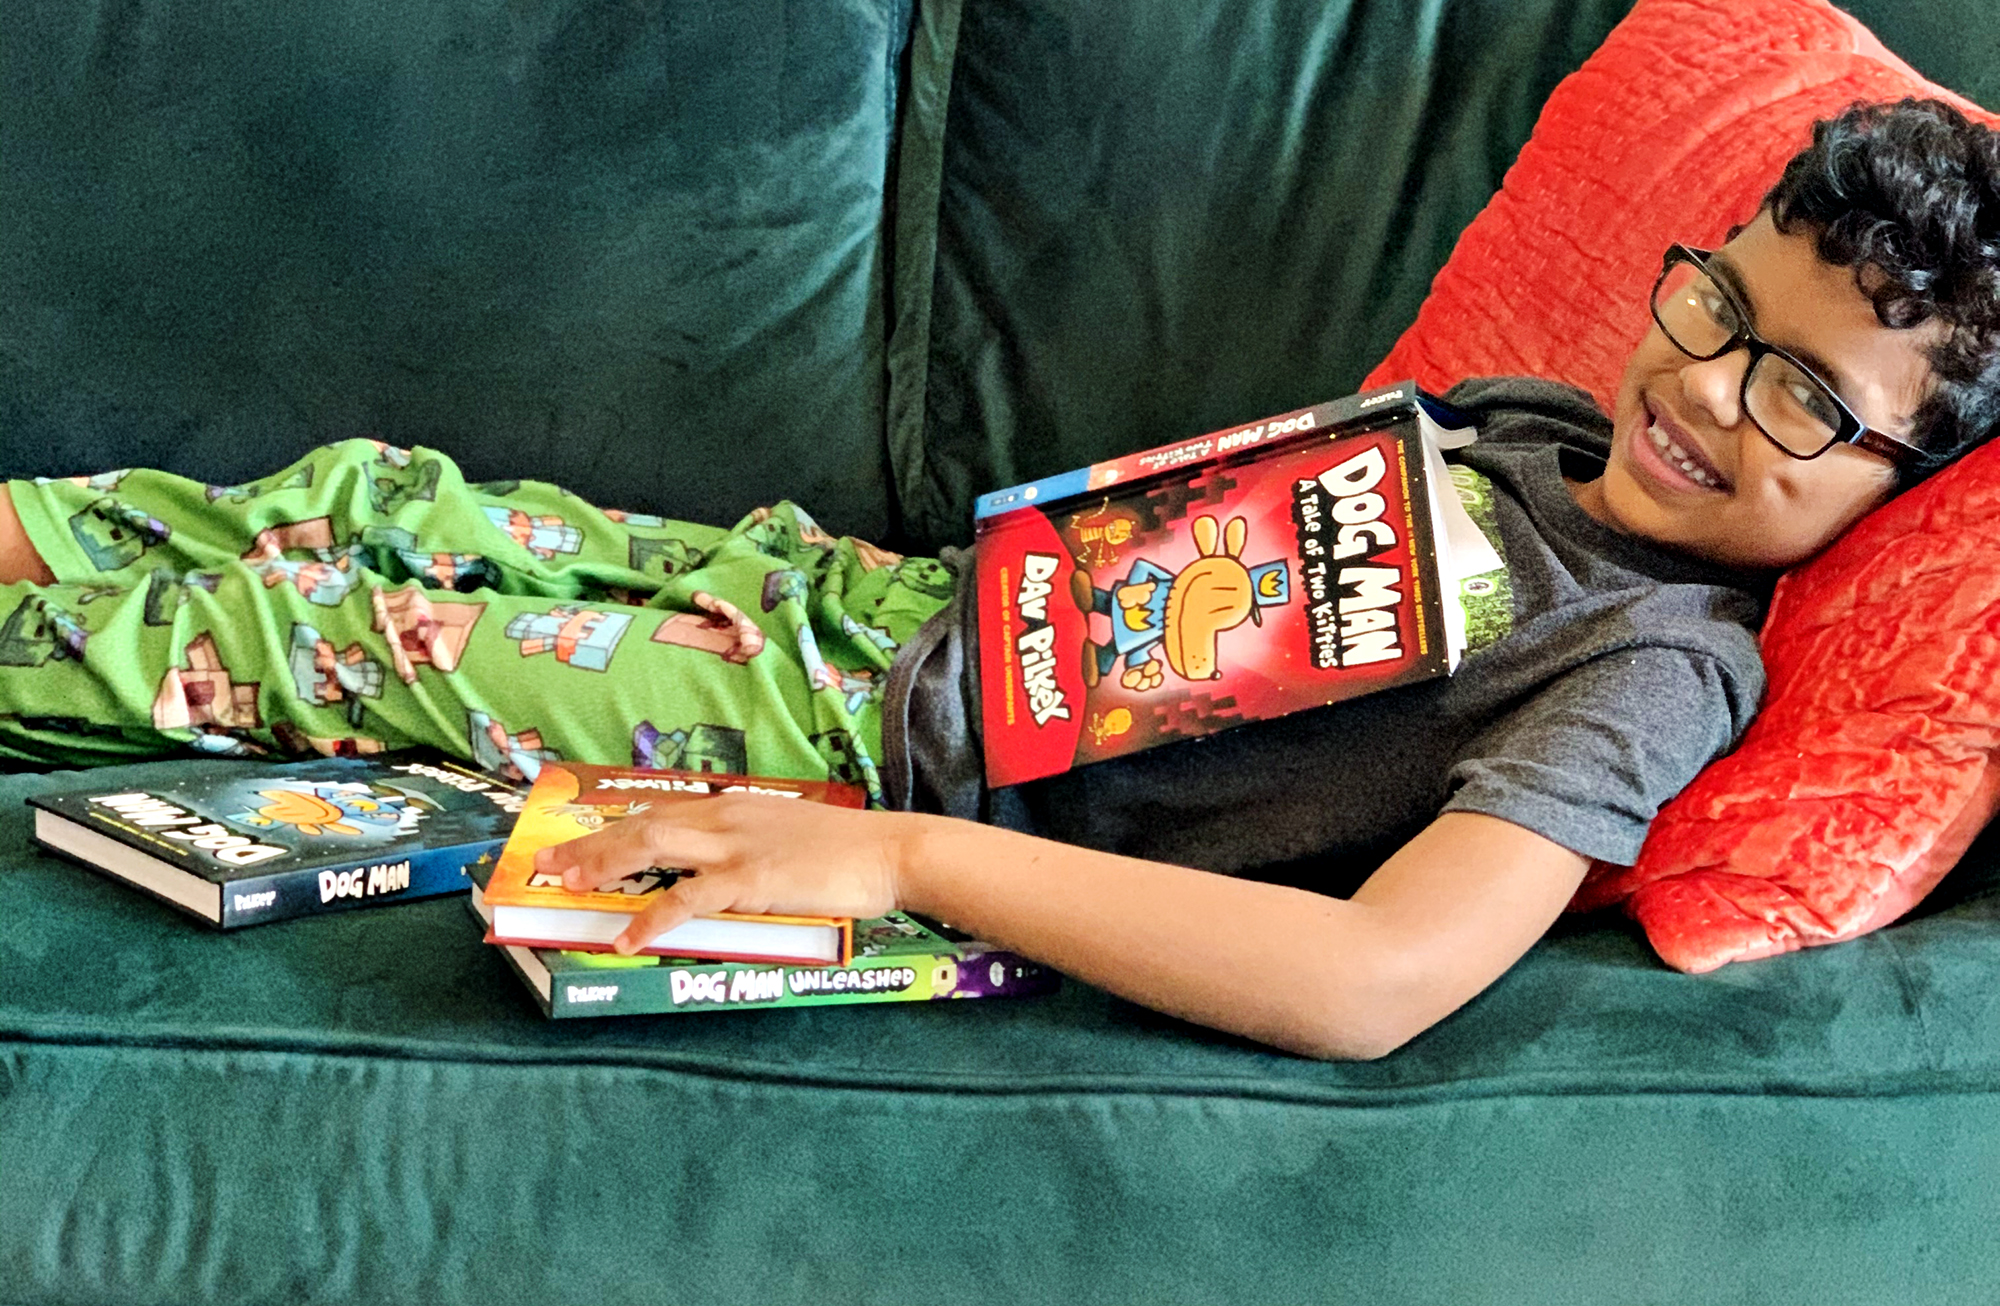 A boy smiling with a Dog Man book on his chest and his hand resting on three other books from the Dav Pilkey series.